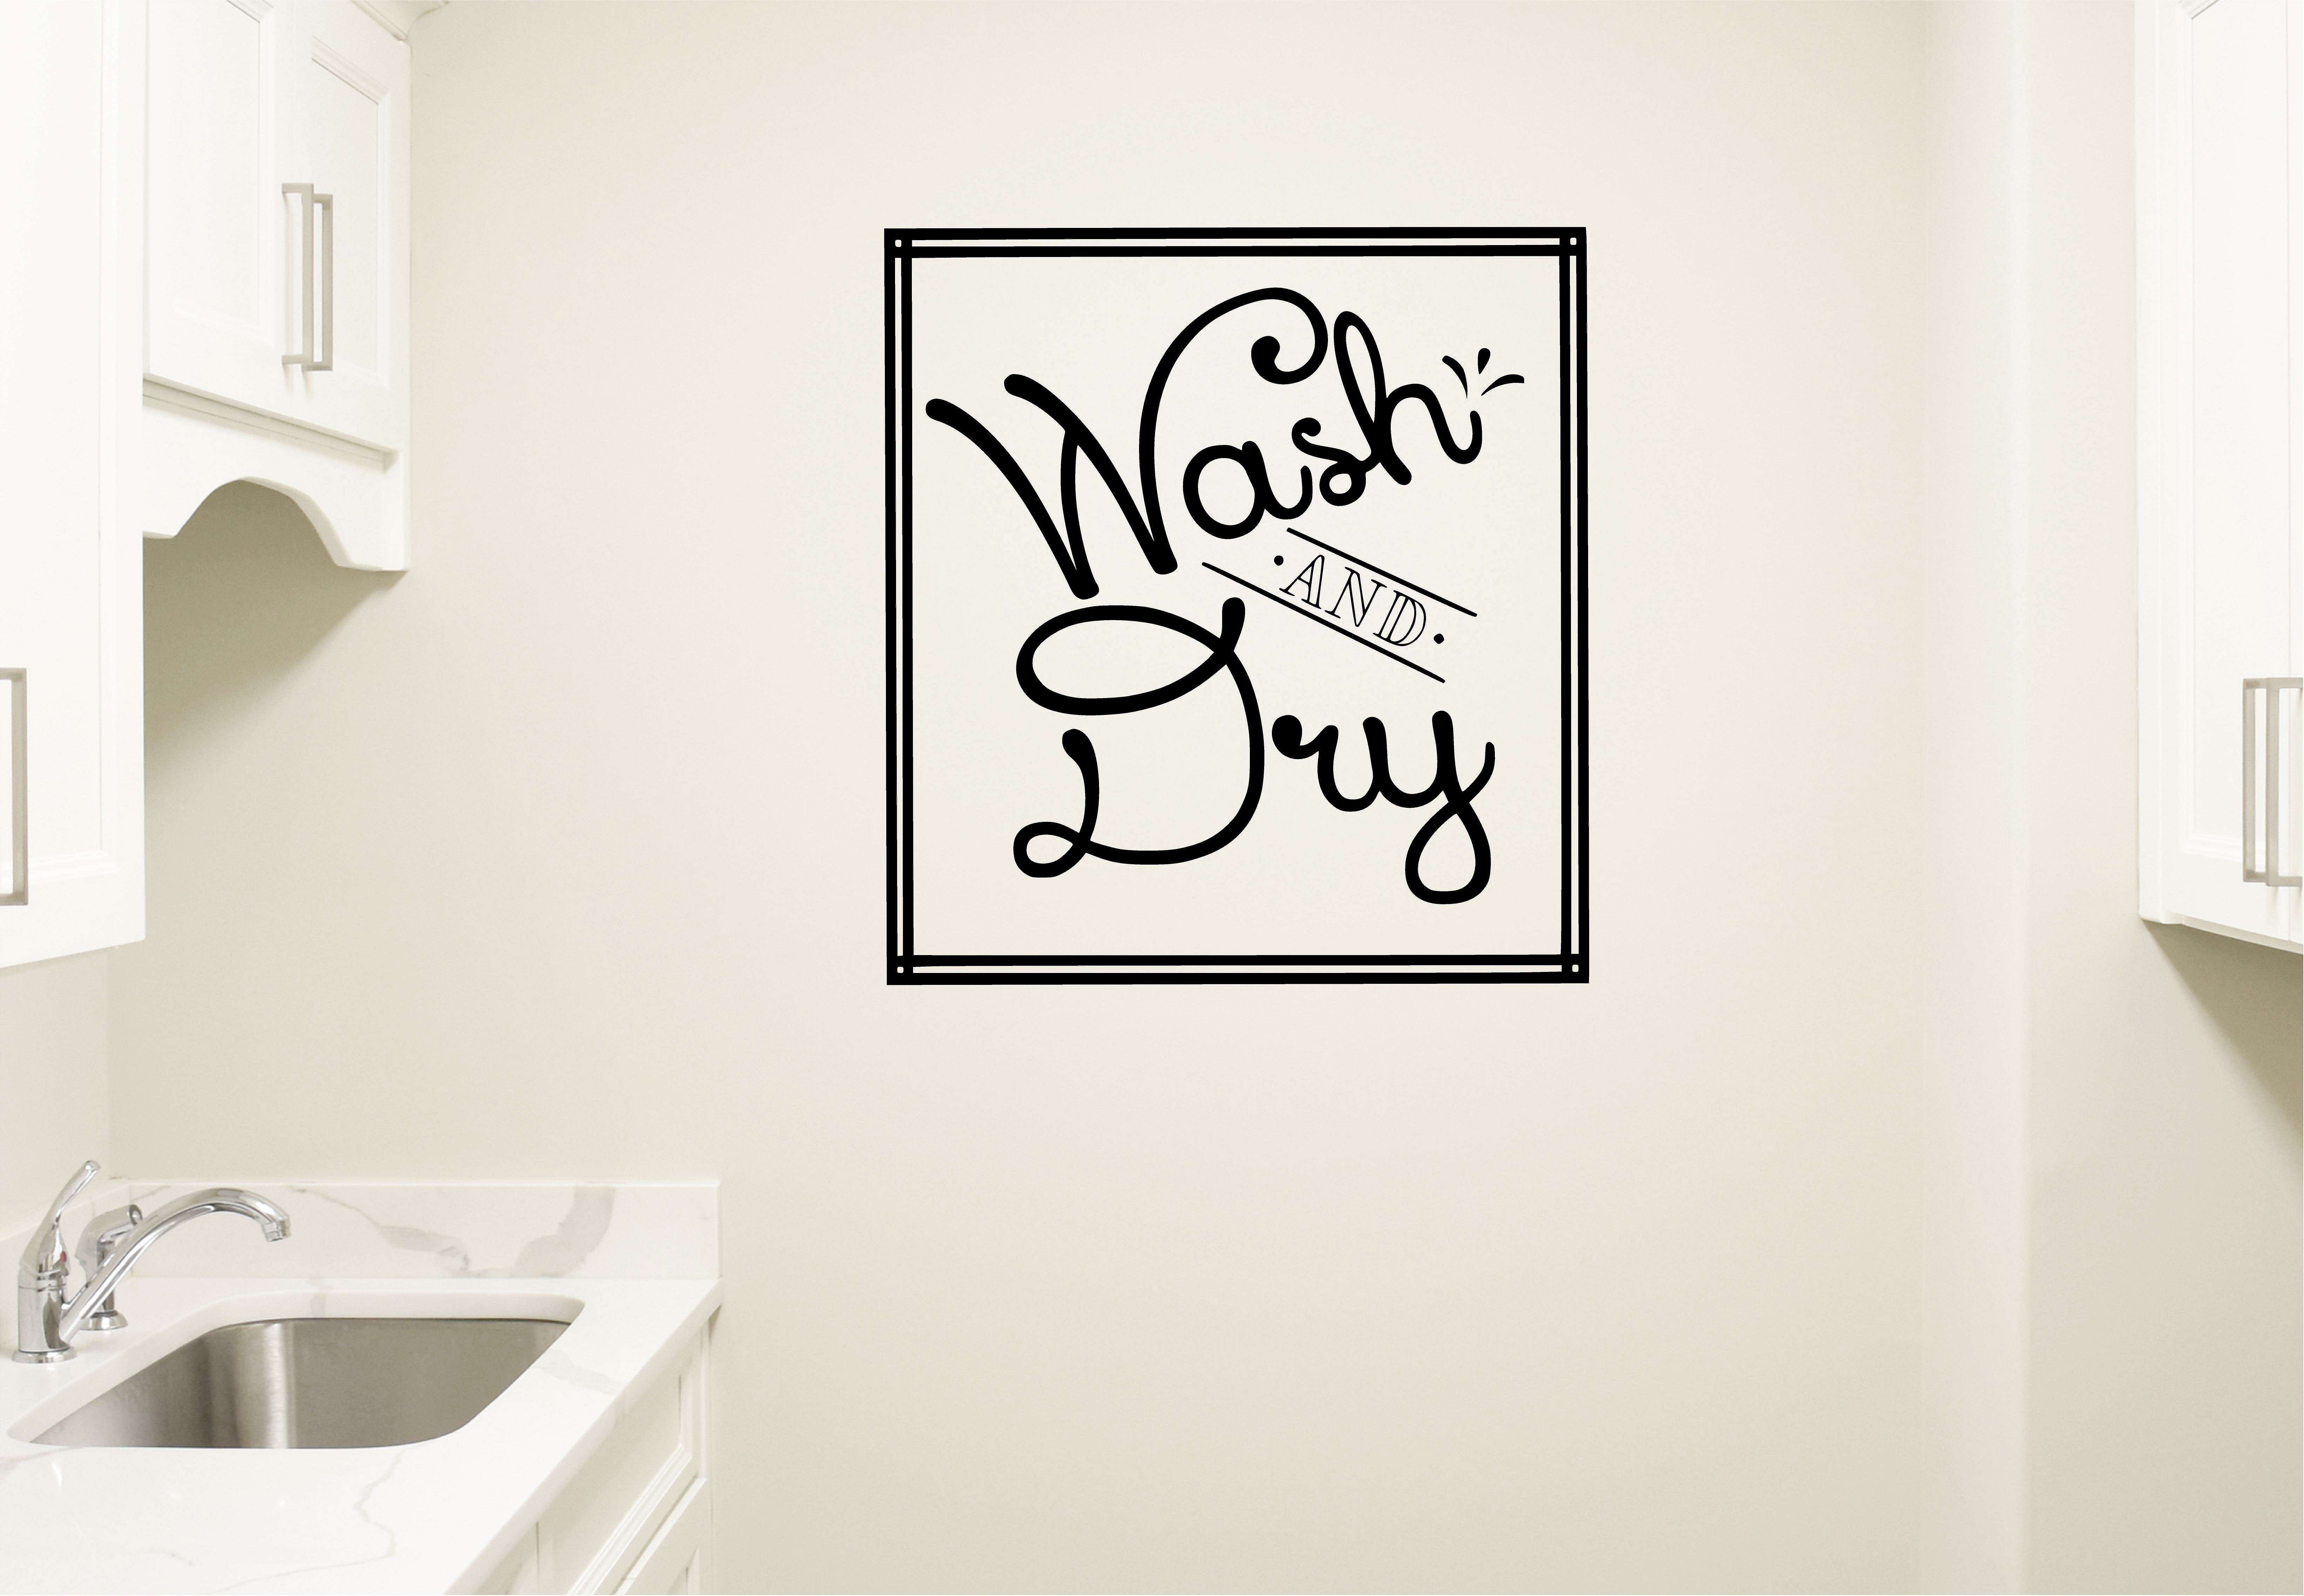 Wash And Dry Laundry Room Bathroom Vinyl Wall Decal throughout Metal Laundry Room Wall Decor By Winston Porter (Image 21 of 30)